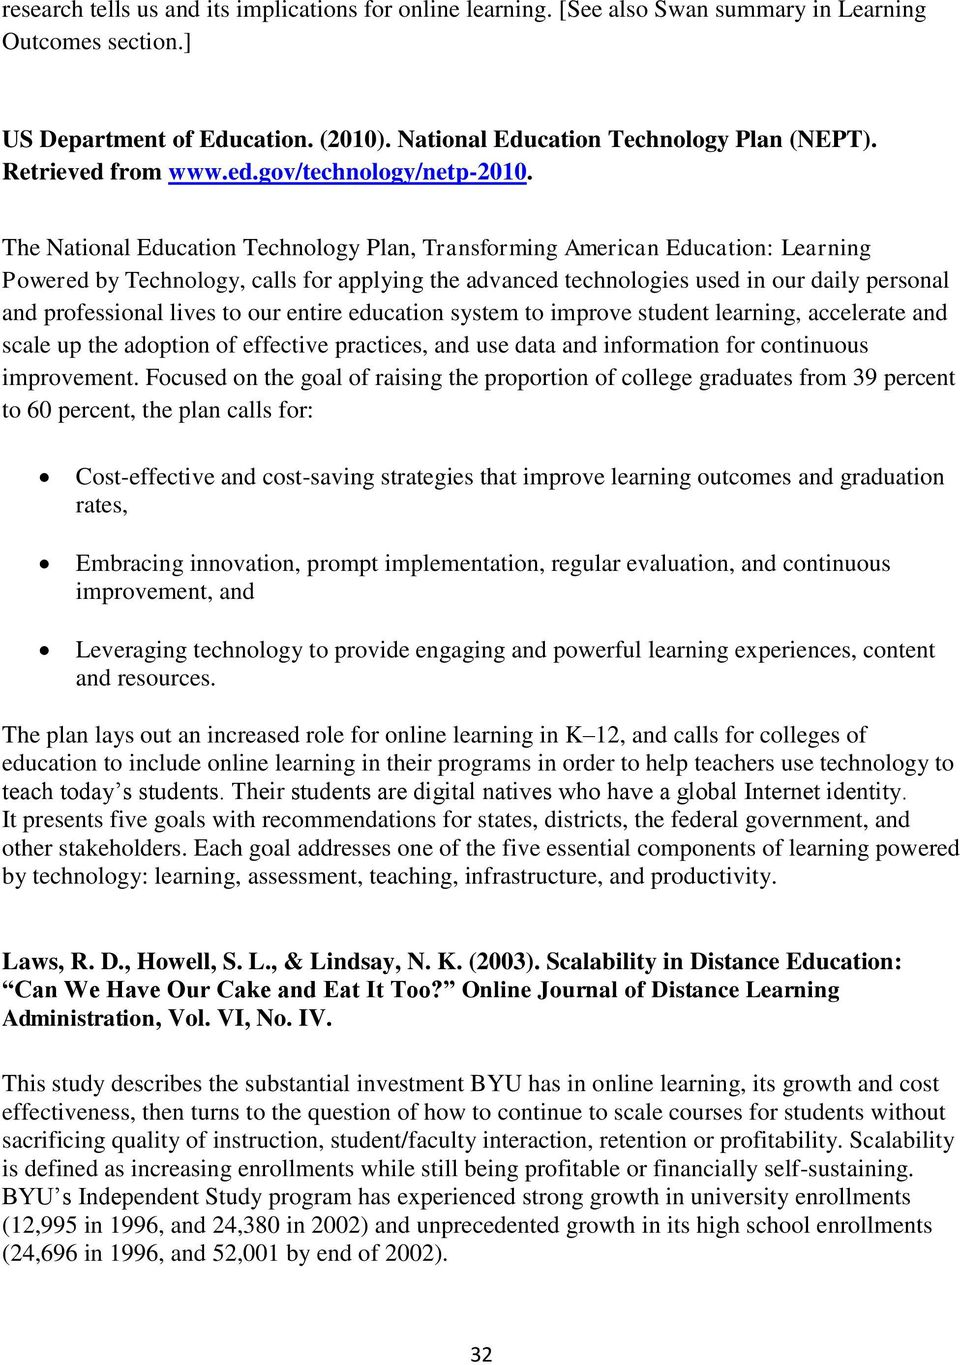 The National Education Technology Plan, Transforming American Education: Learning Powered by Technology, calls for applying the advanced technologies used in our daily personal and professional lives